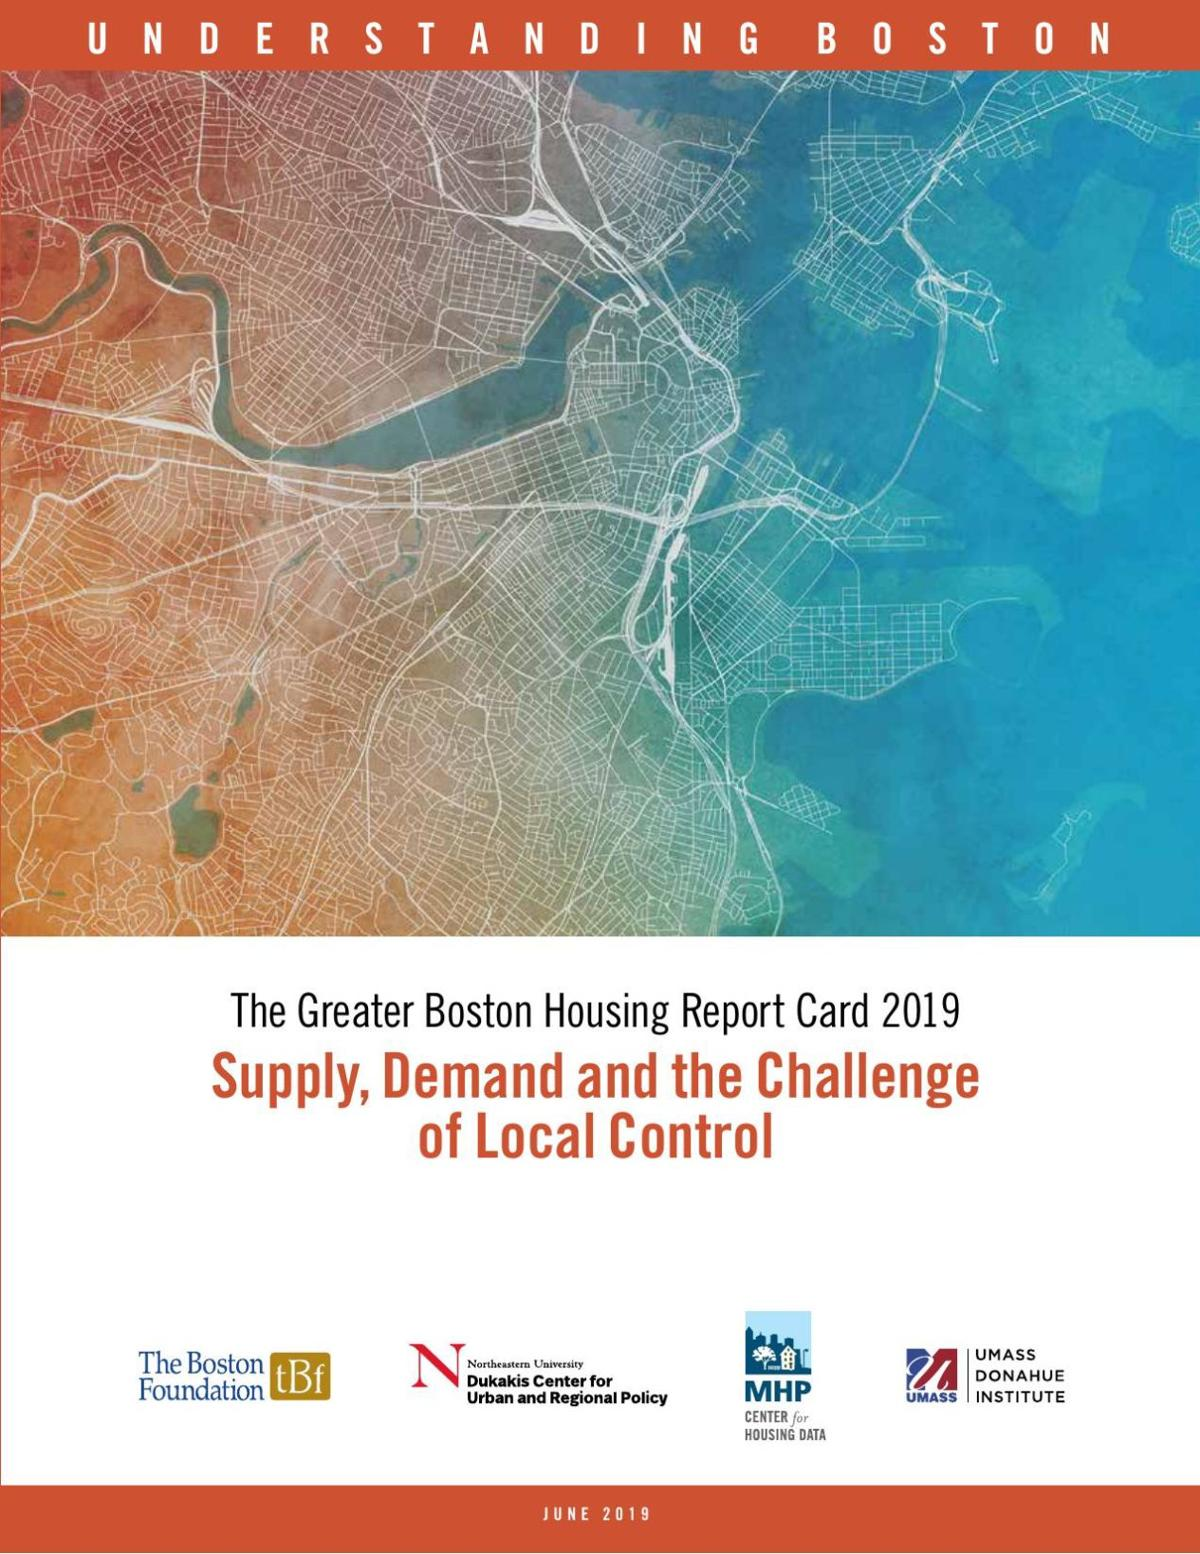 The Greater Boston Housing Report Card 2019